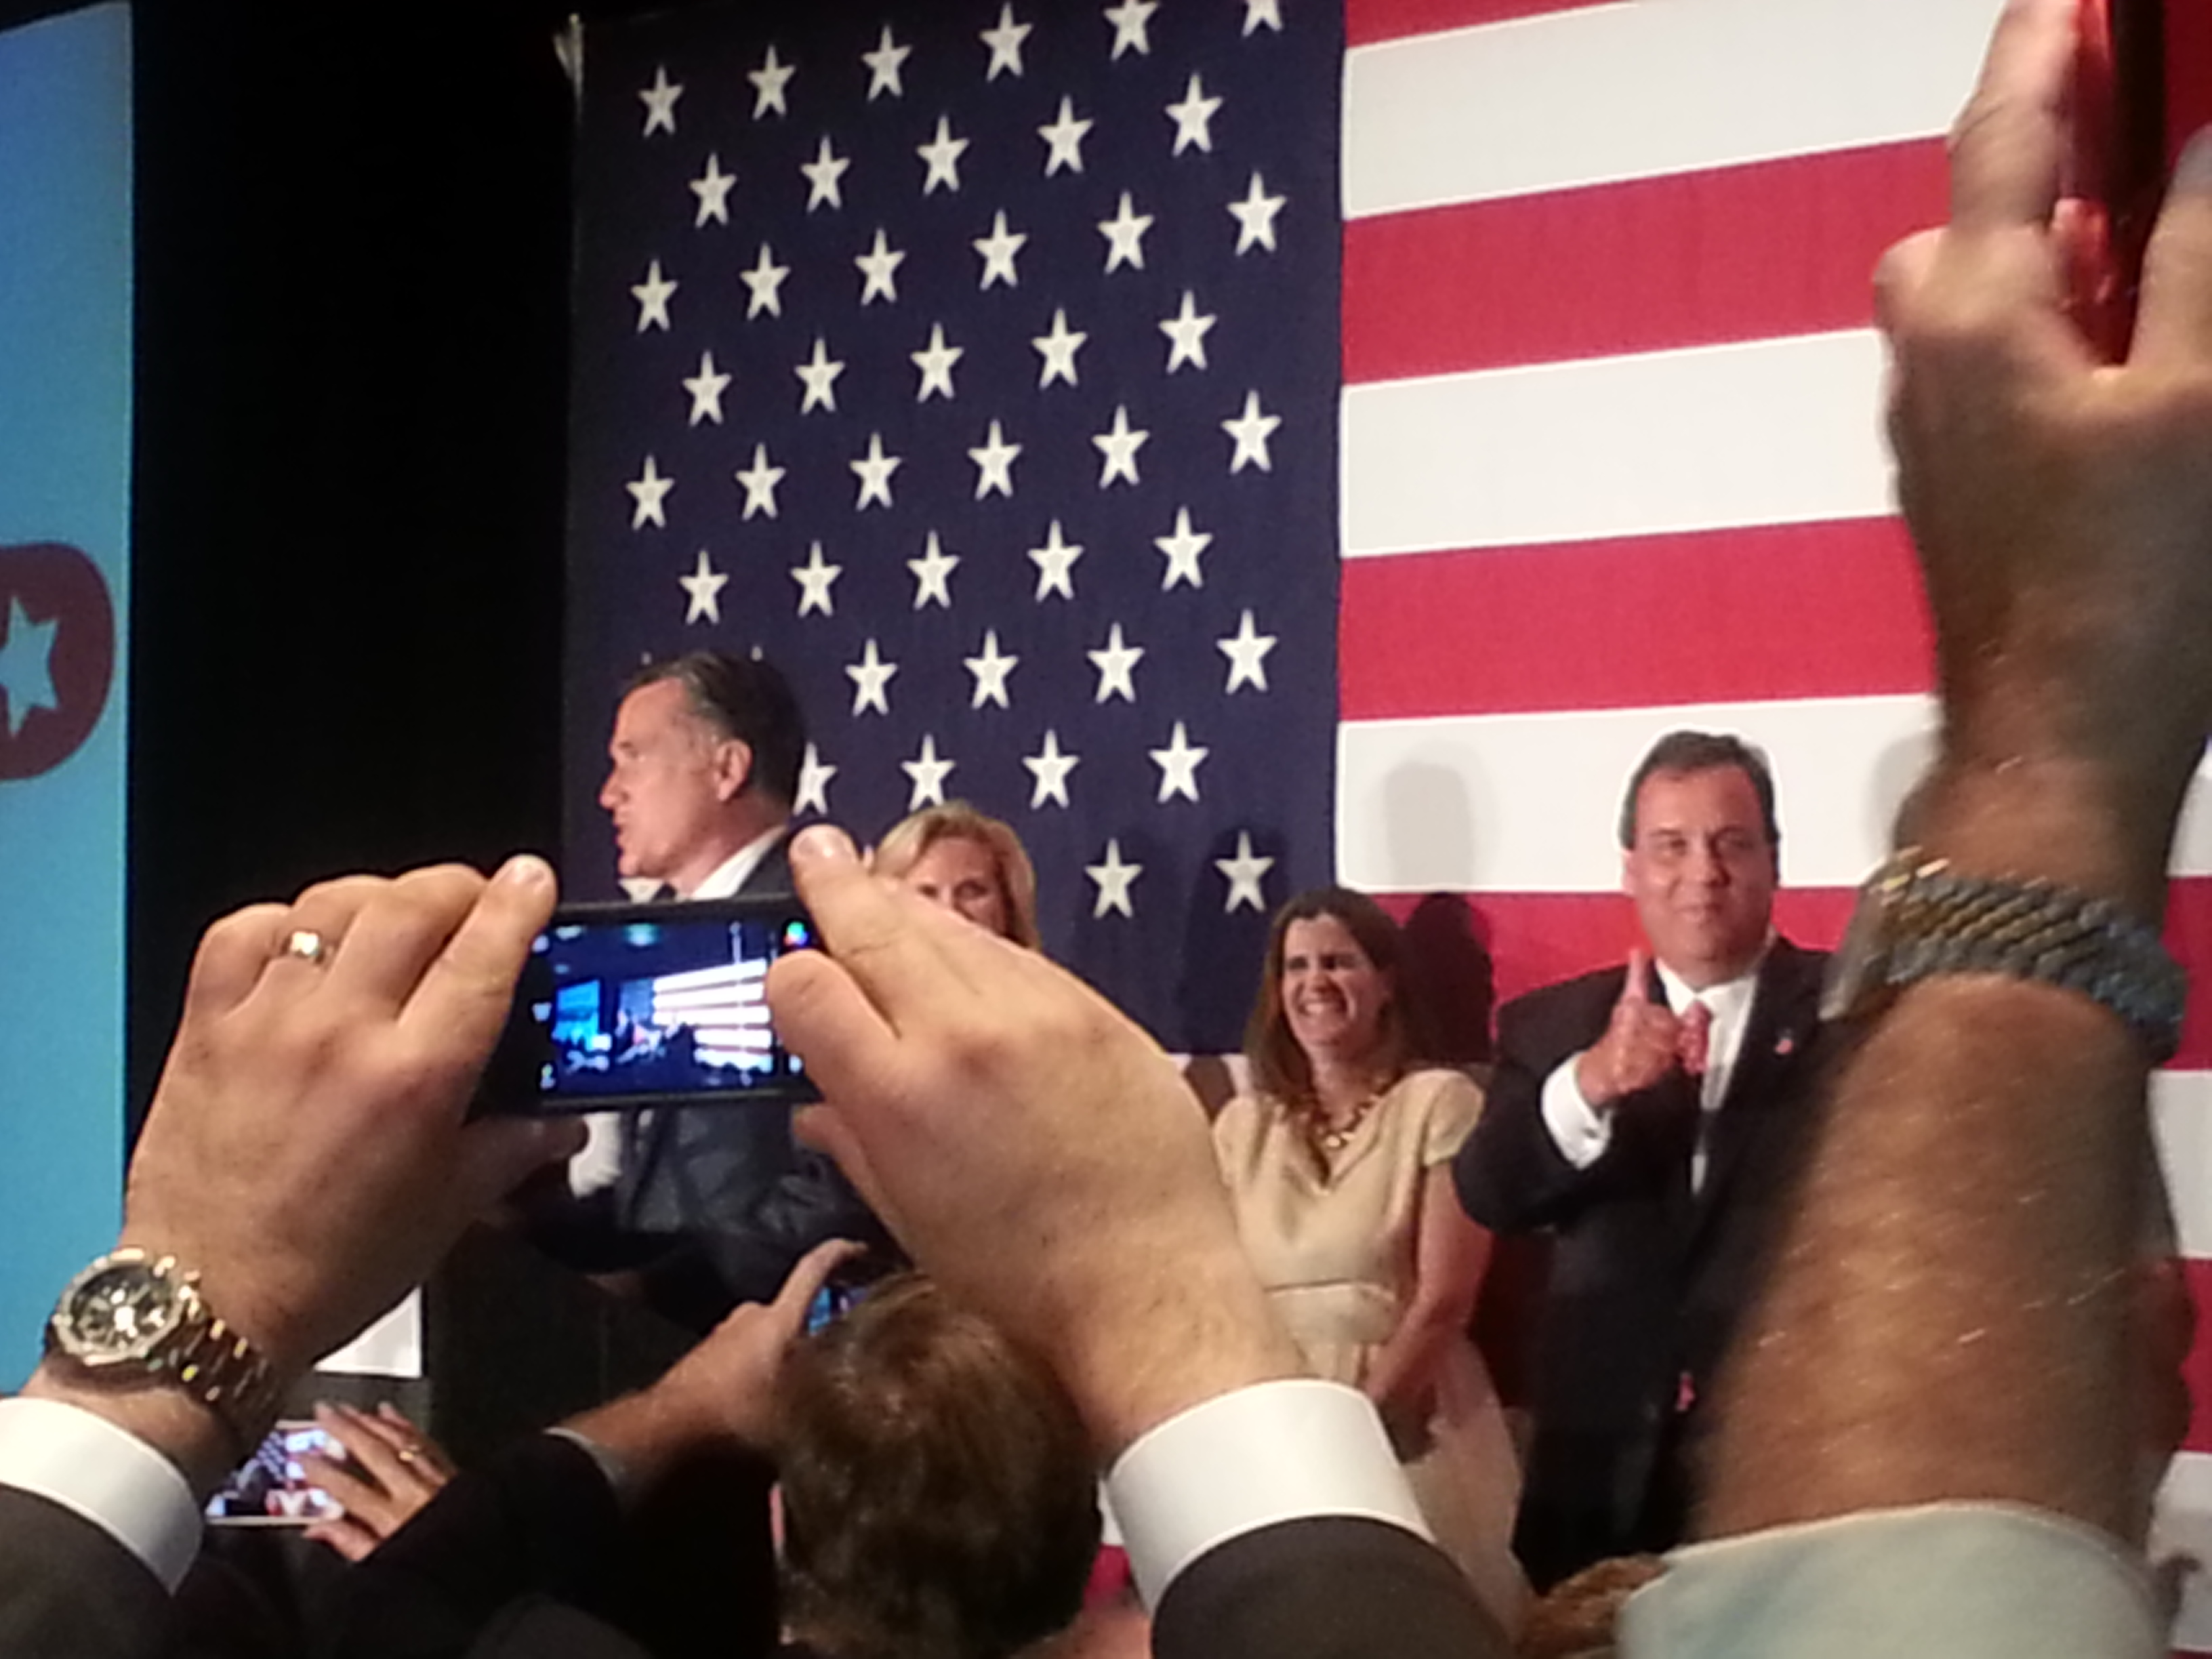 Taking a Pass, Romney to Meet Christie for Dinner